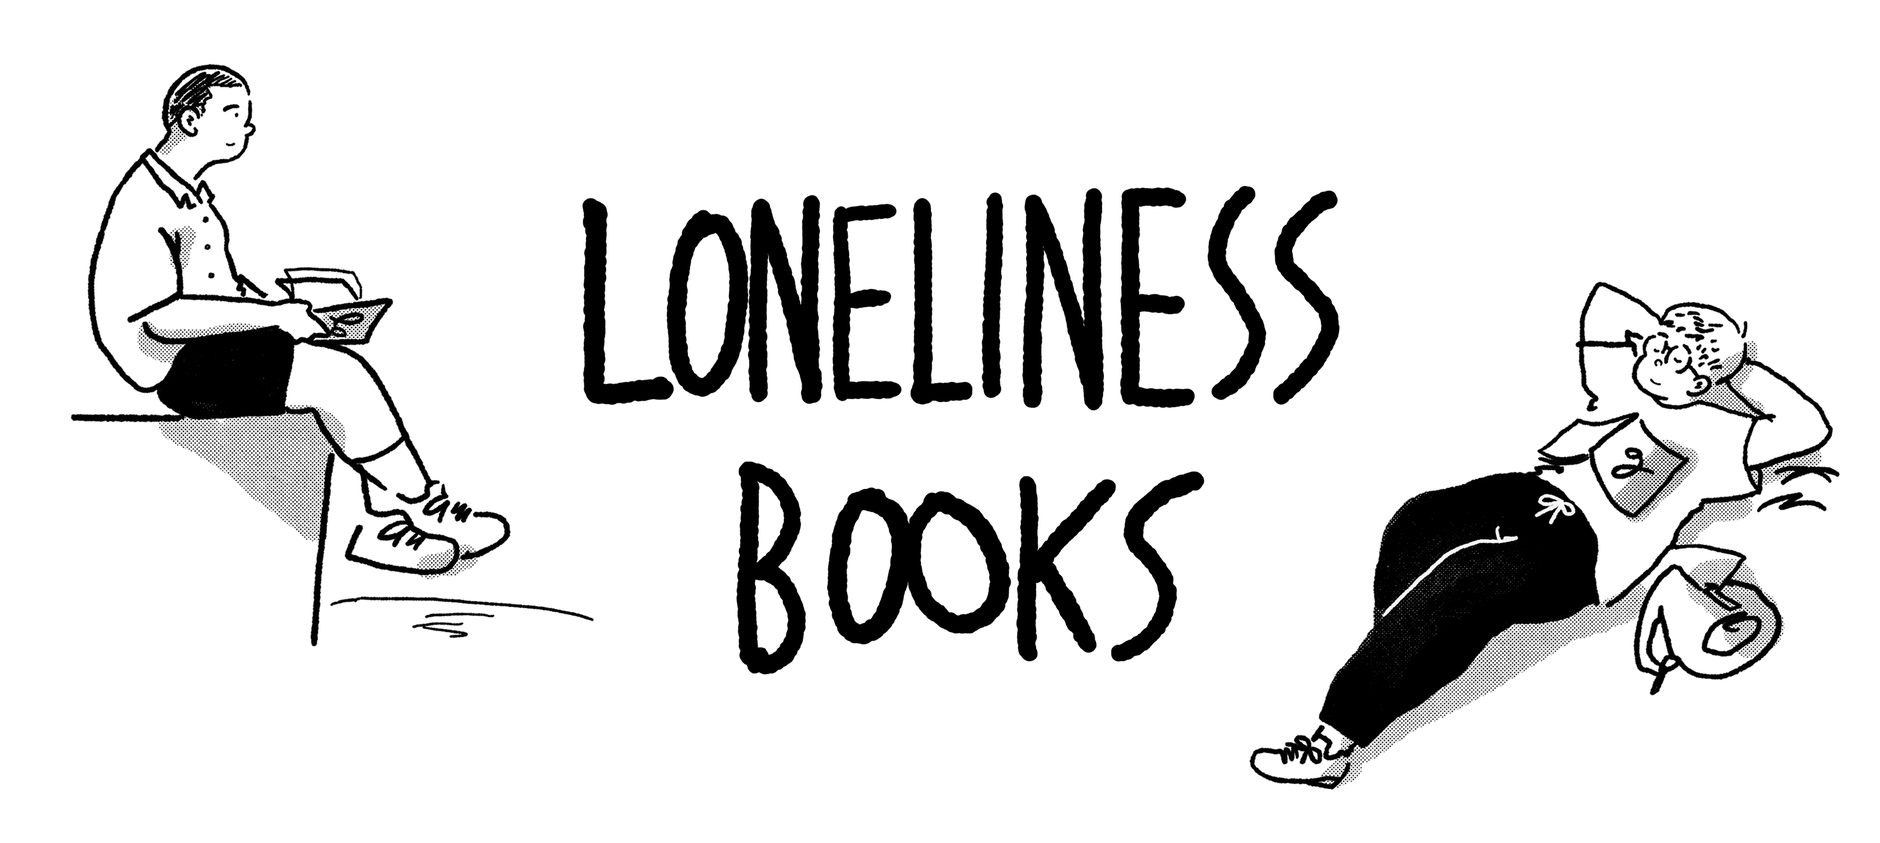 loneliness books